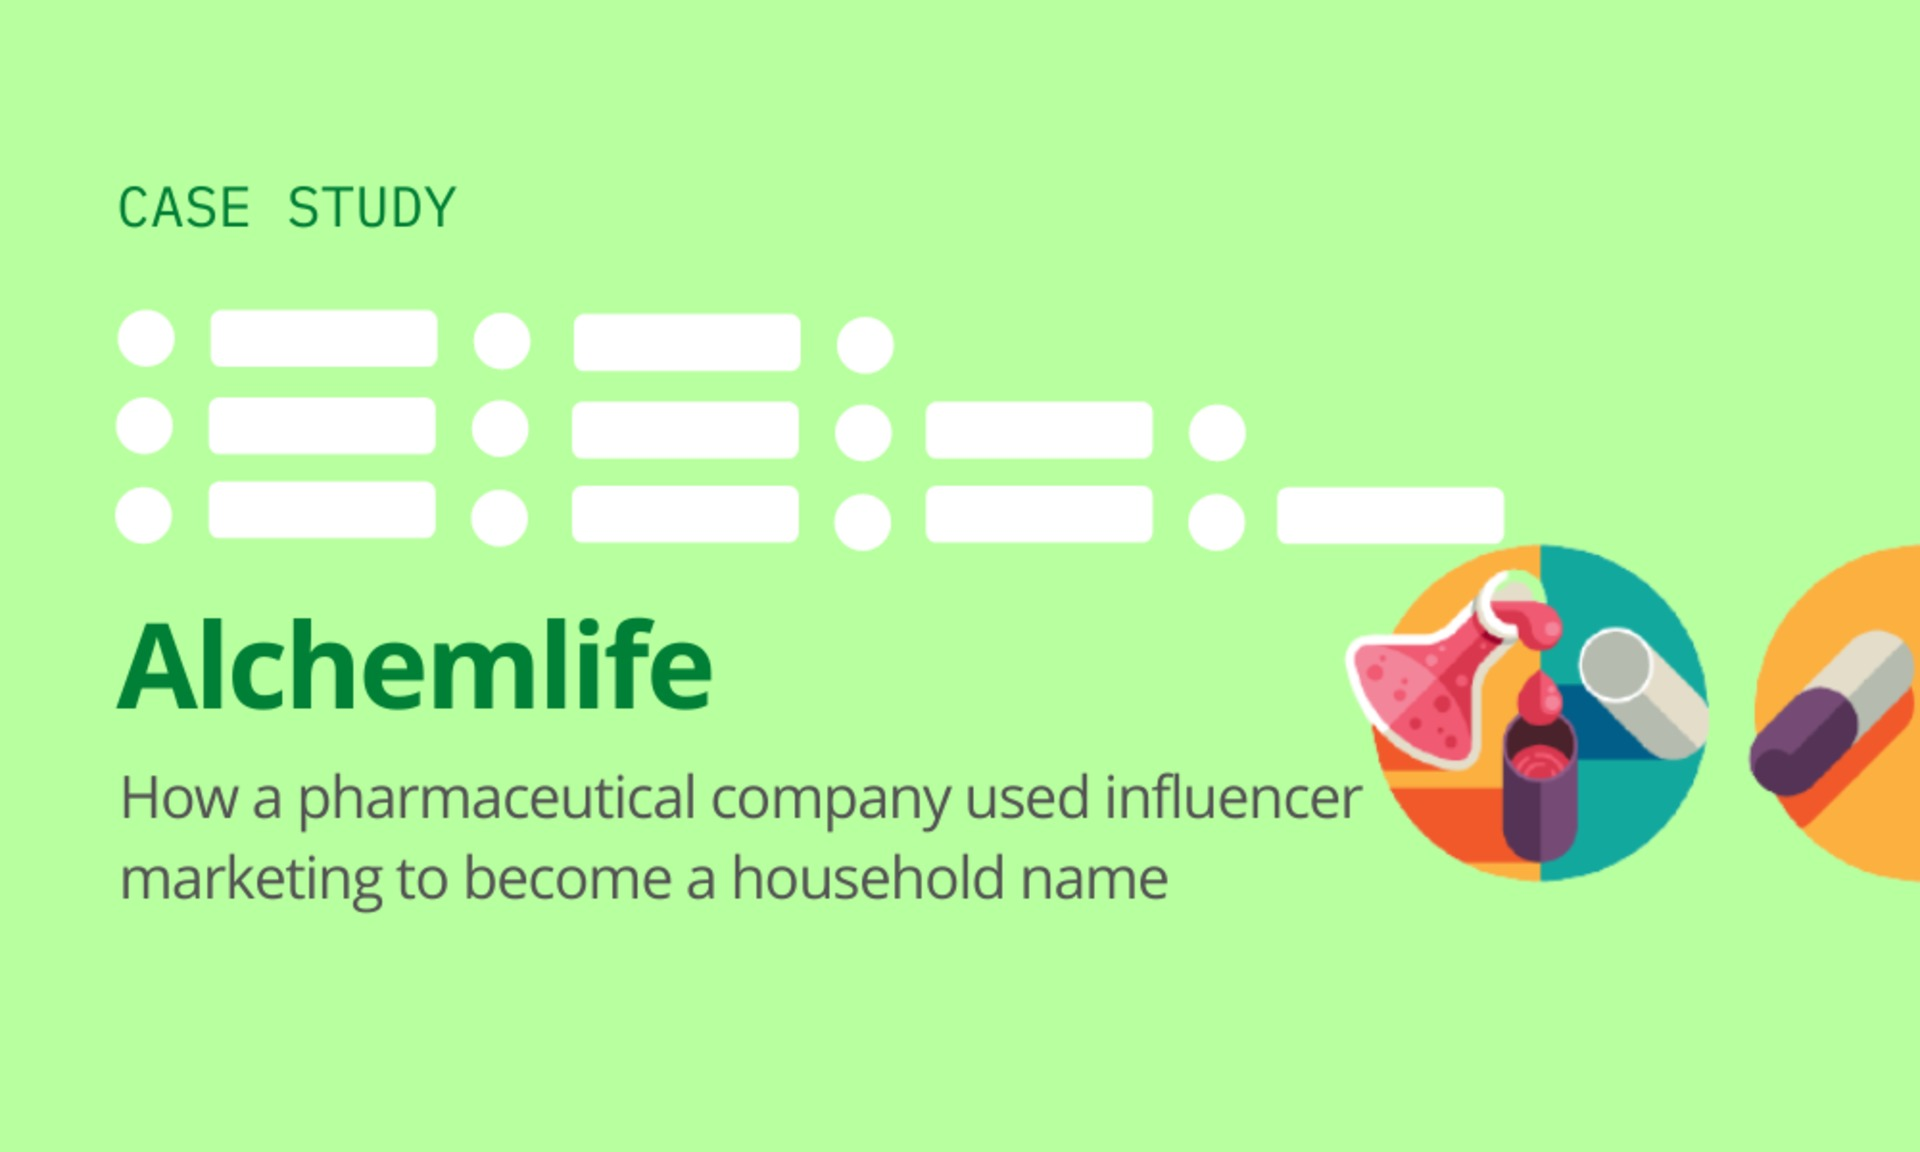 Alchemlife: How a pharmaceutical company used influencer marketing to become a household name image